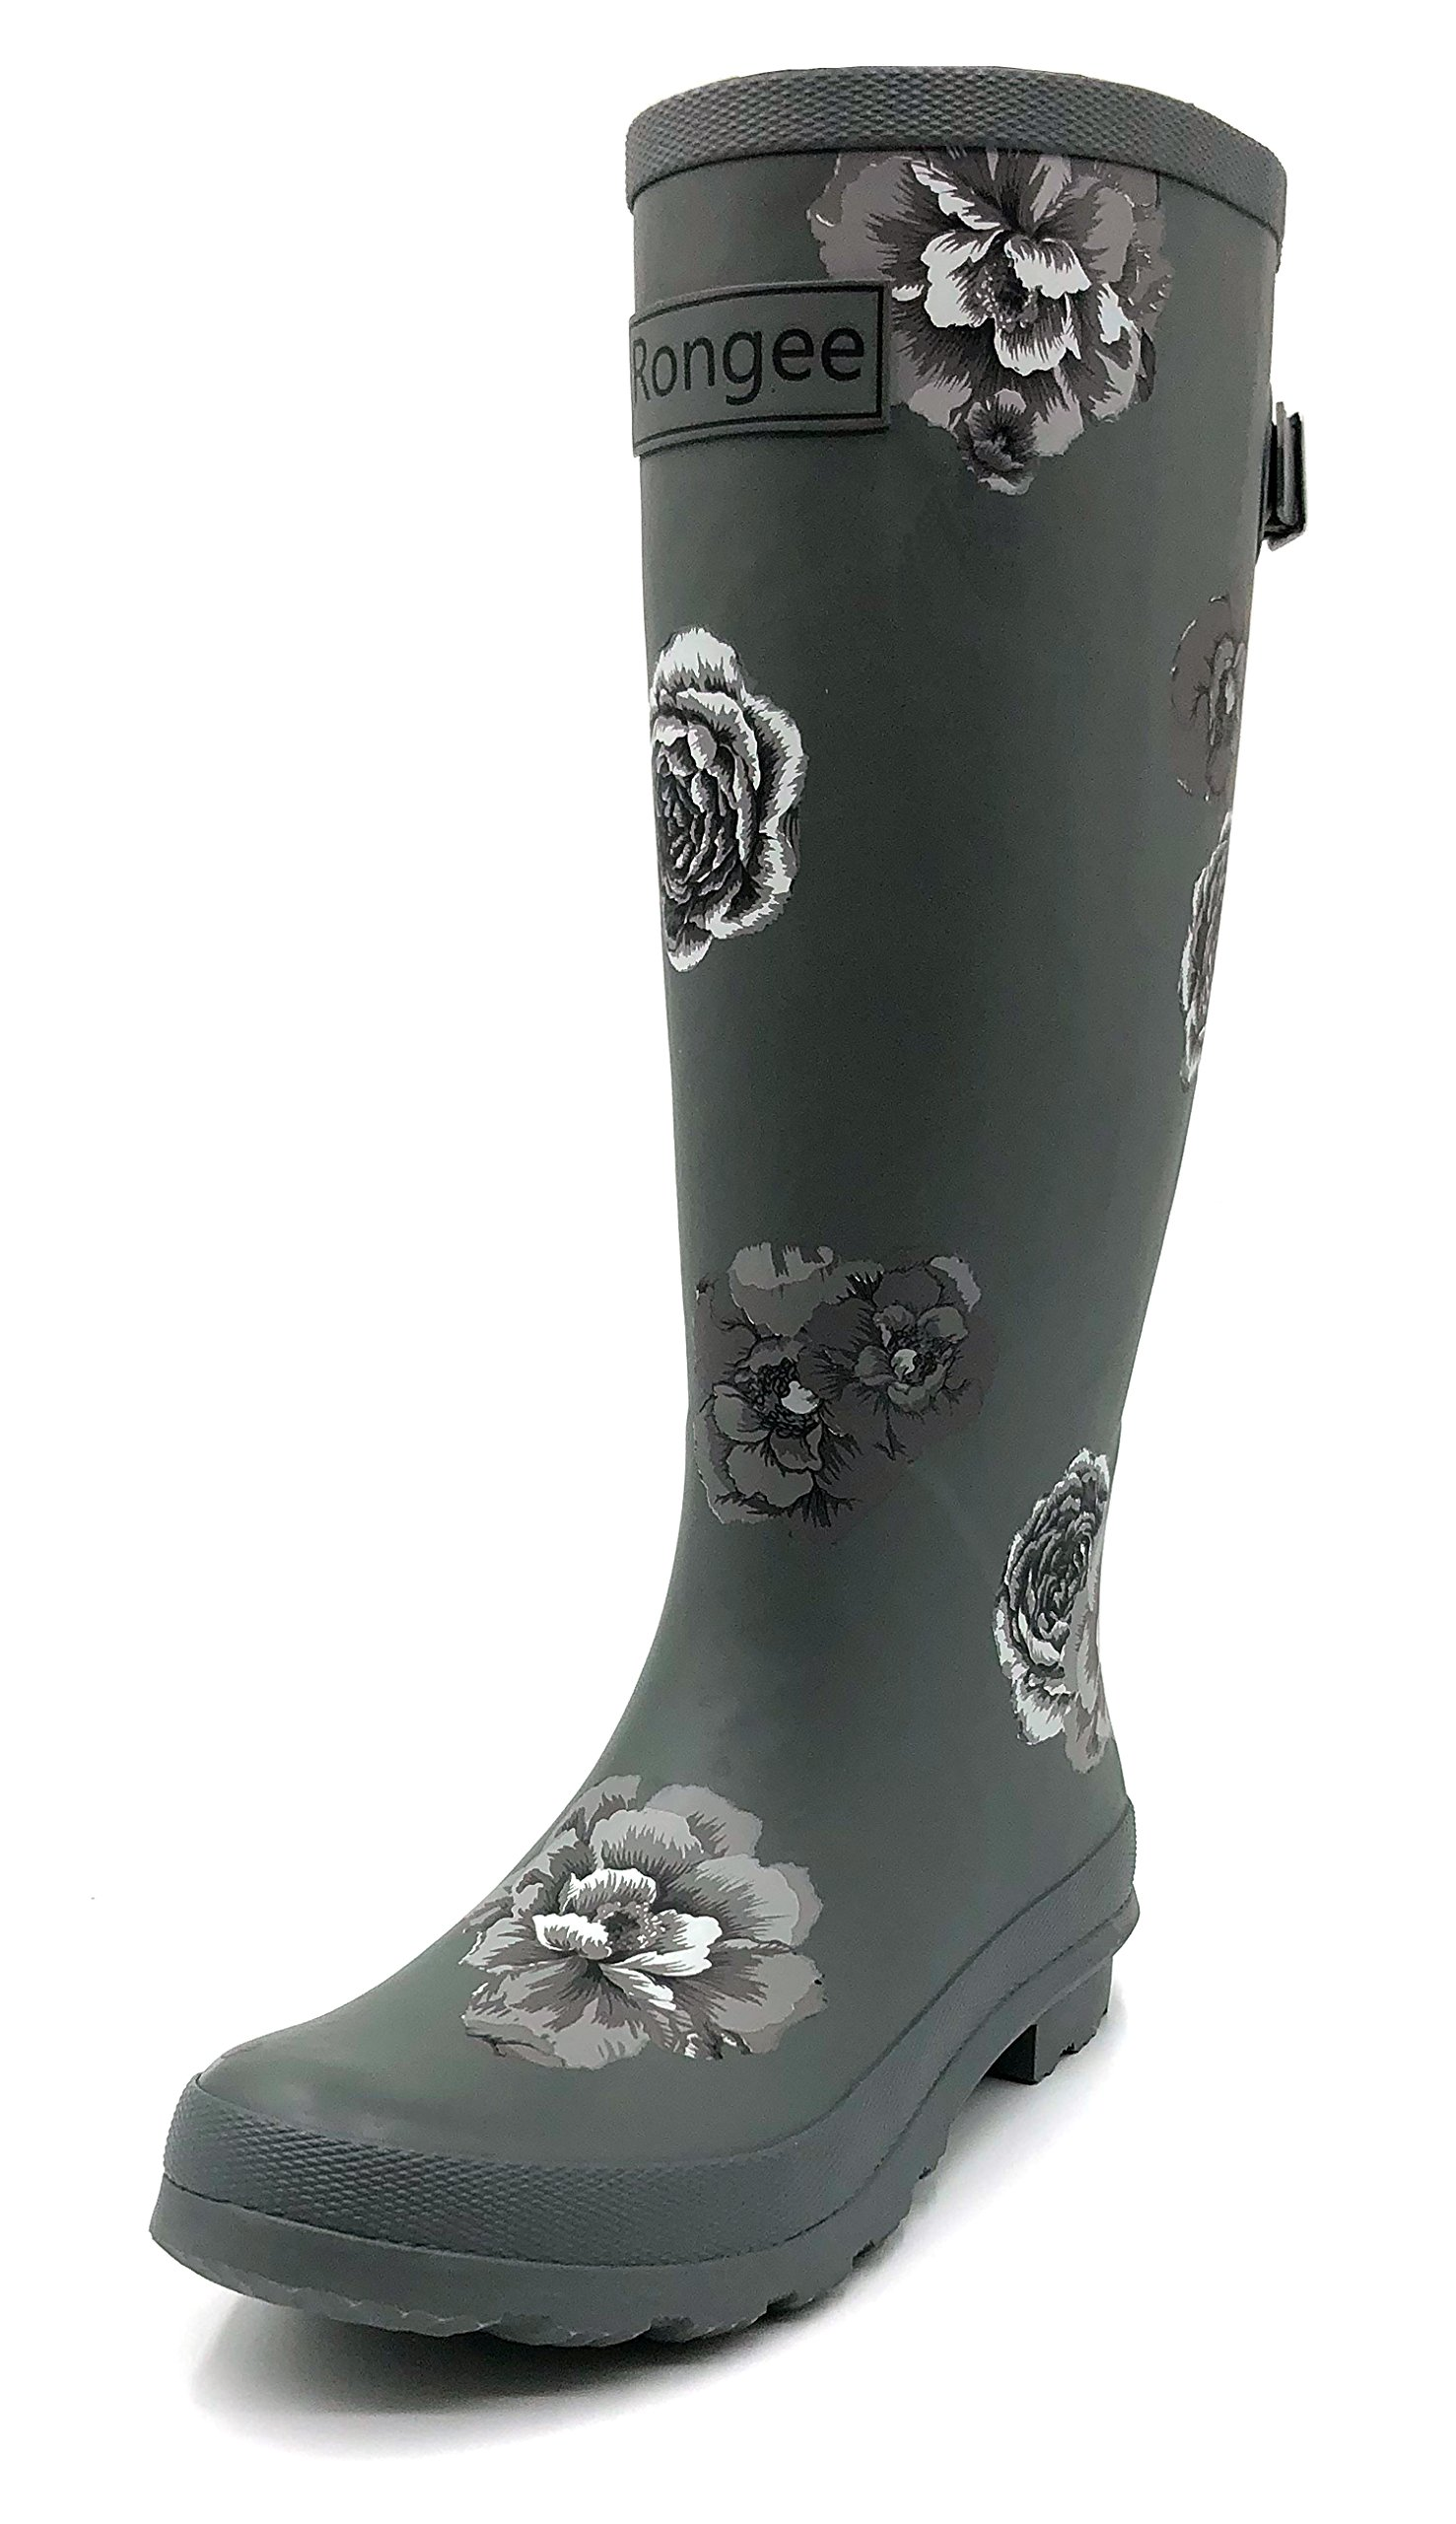 Rongee Ladies Rose Printed Tall Rubber Rain Boots for Women with Adjustable Gusset and Oxford Bag Packed (9 B(M) US)